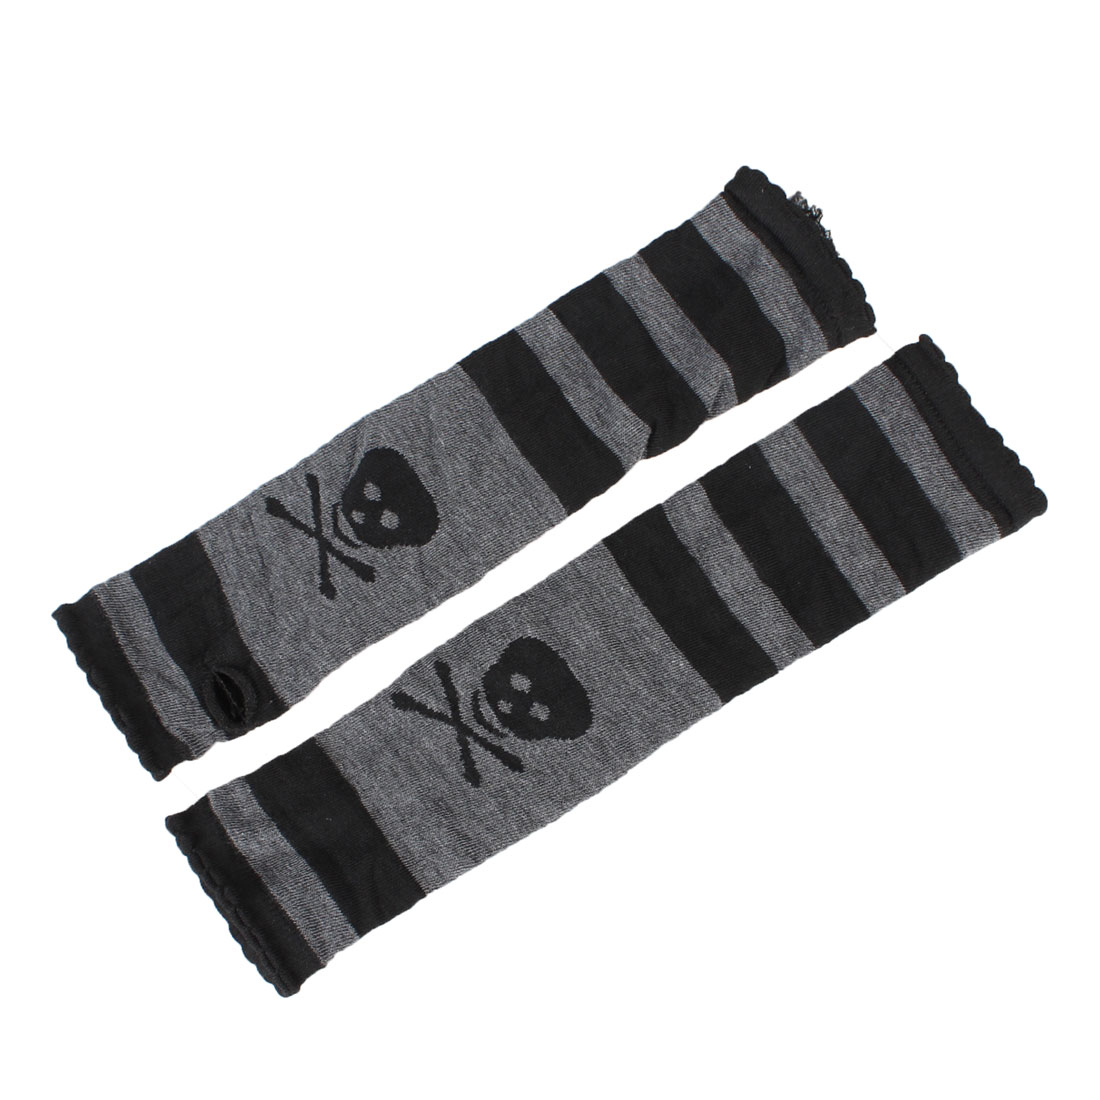 Stripe Skull Print Fingerless Elbow Long Black Gray Gloves Lady Arm Warmer Pair